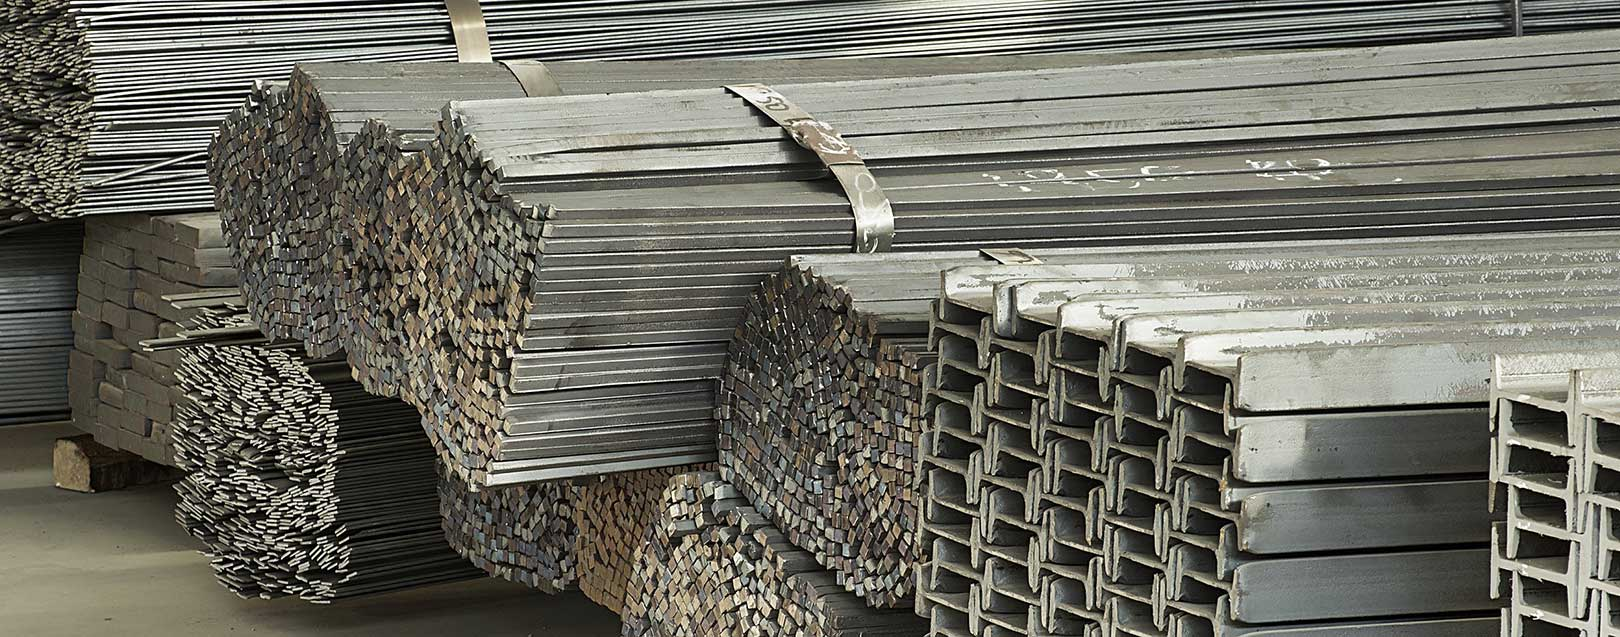 India exports 8.22 MT of finished steel in Apr-Jan